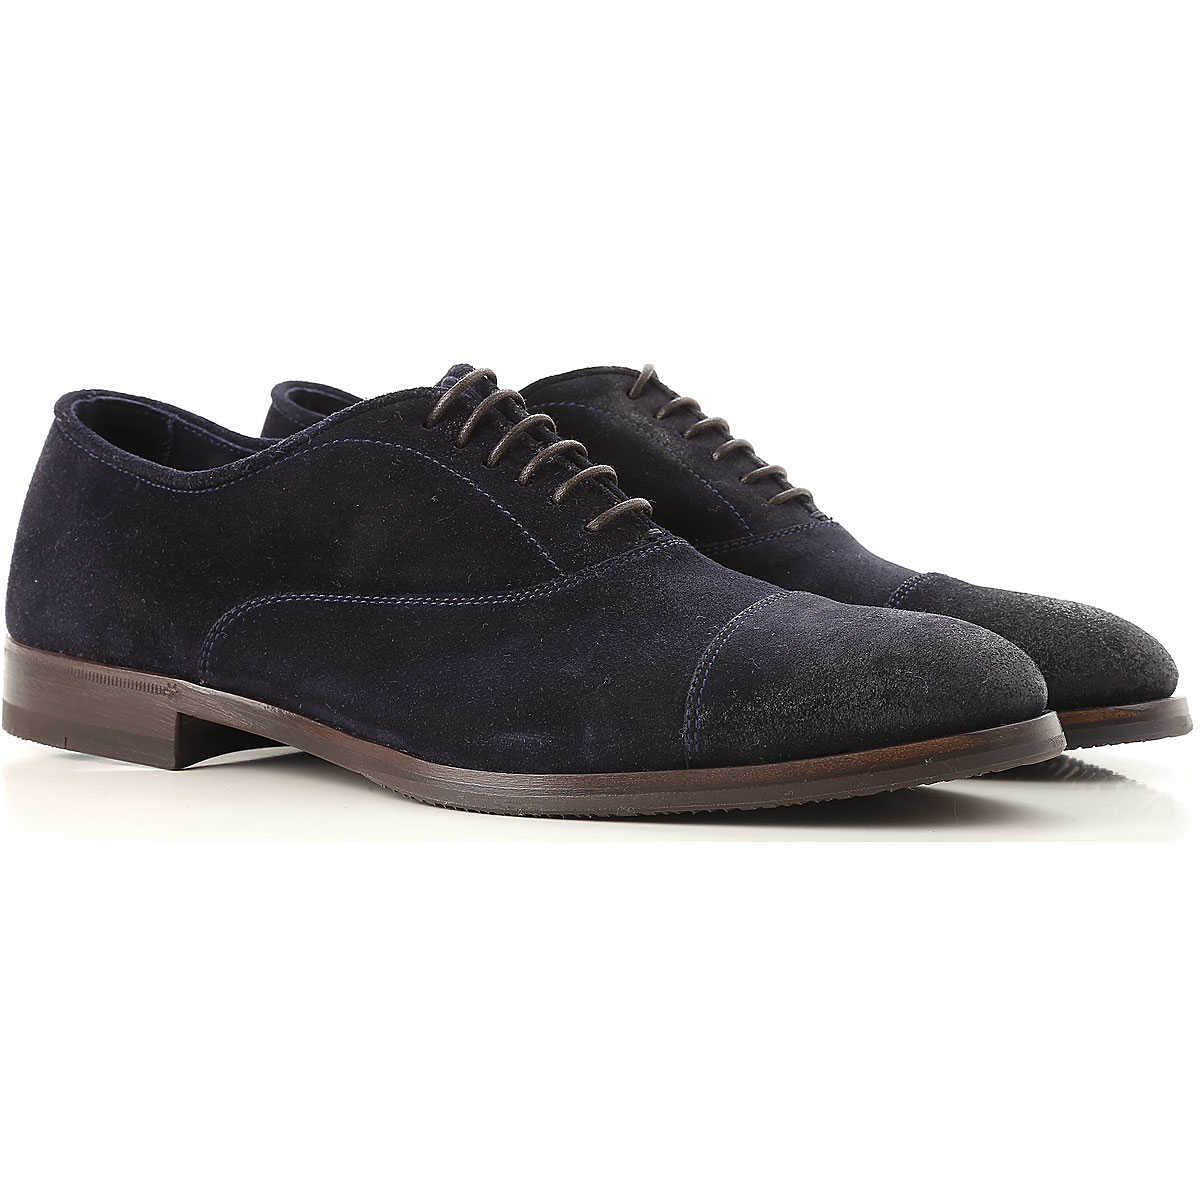 Henderson Lace Up Shoes for Men Oxfords 10 10.5 8 8.5 9.5 Derbies and Brogues On Sale UK - GOOFASH